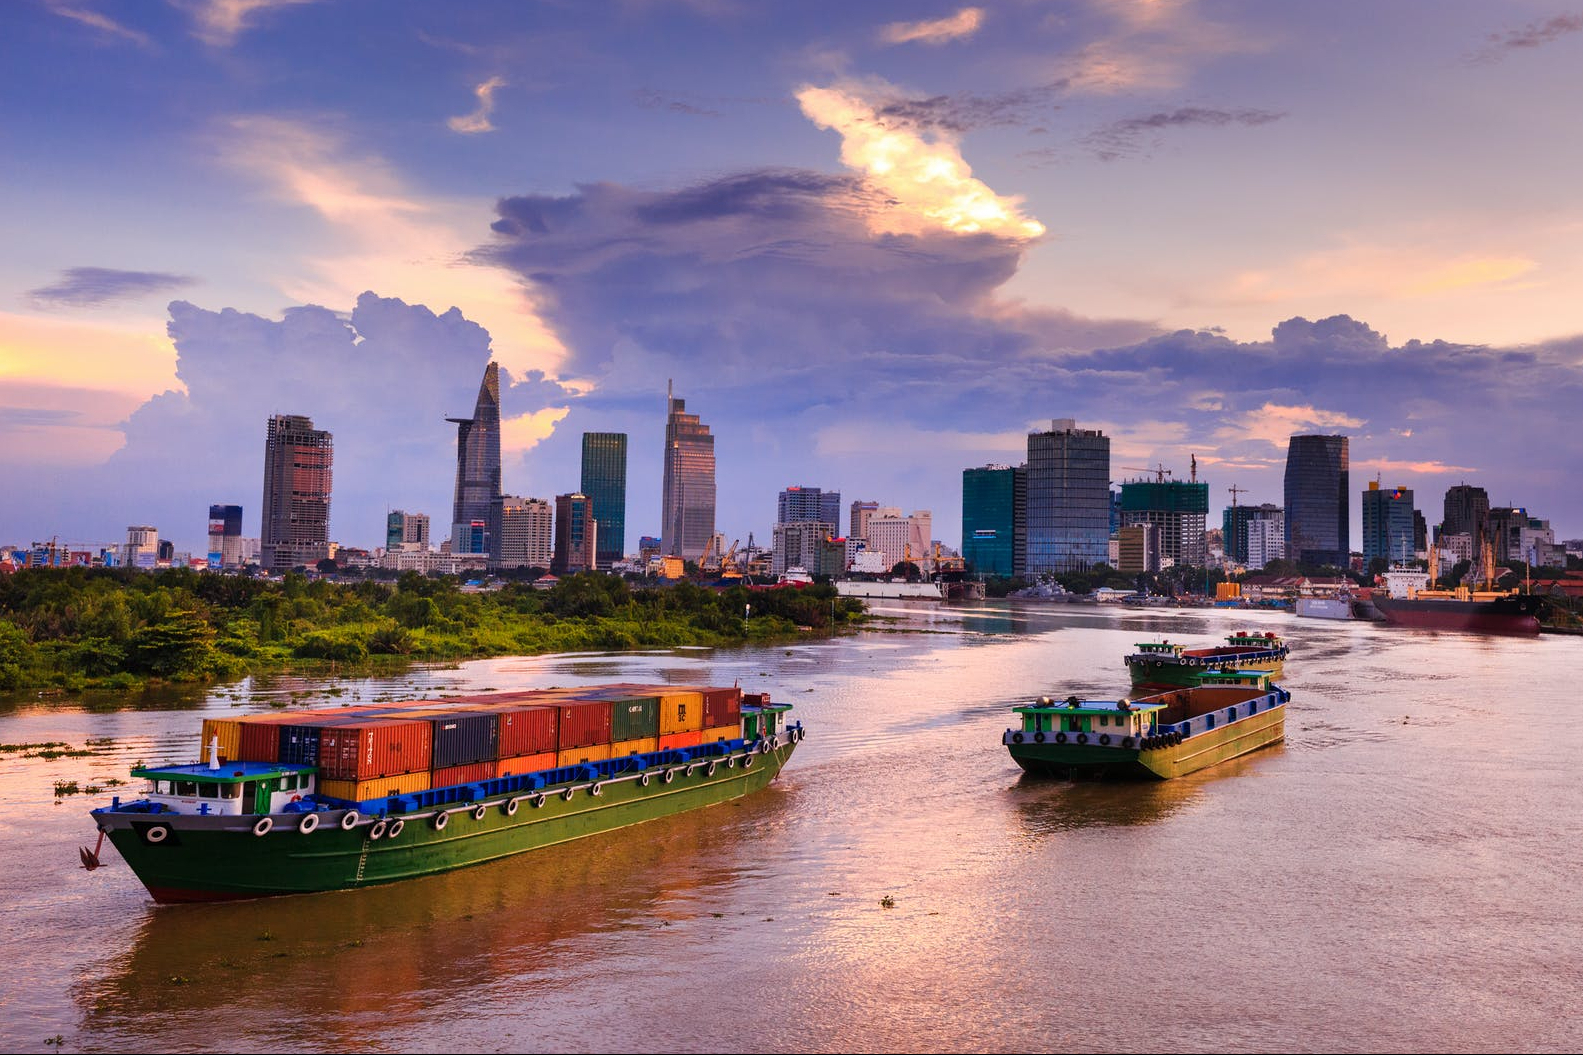 Sea freight in Ho Chi Minh